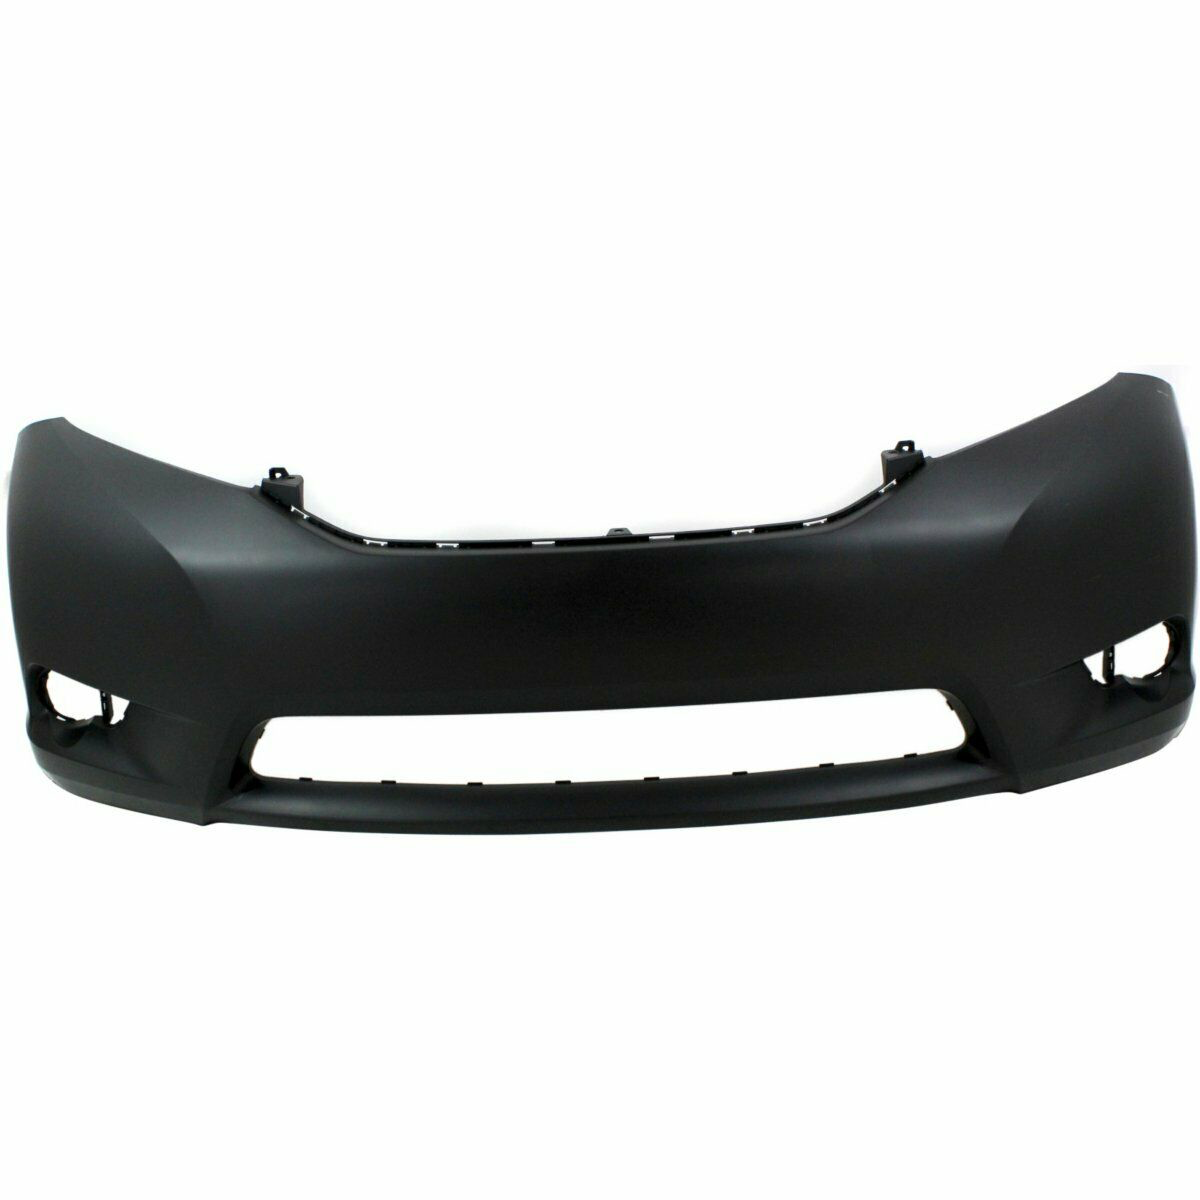 2011-2015 Toyota Sienna LE XLE Front Bumper Painted to Match